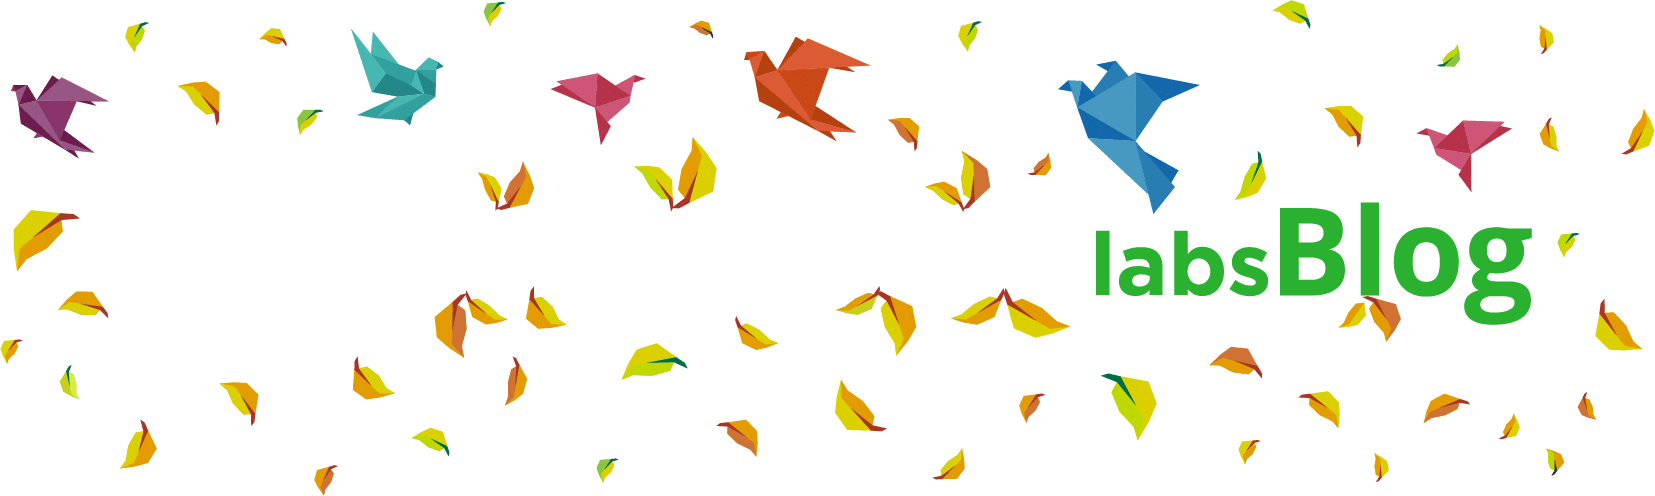 Rubyroid Labs Blog